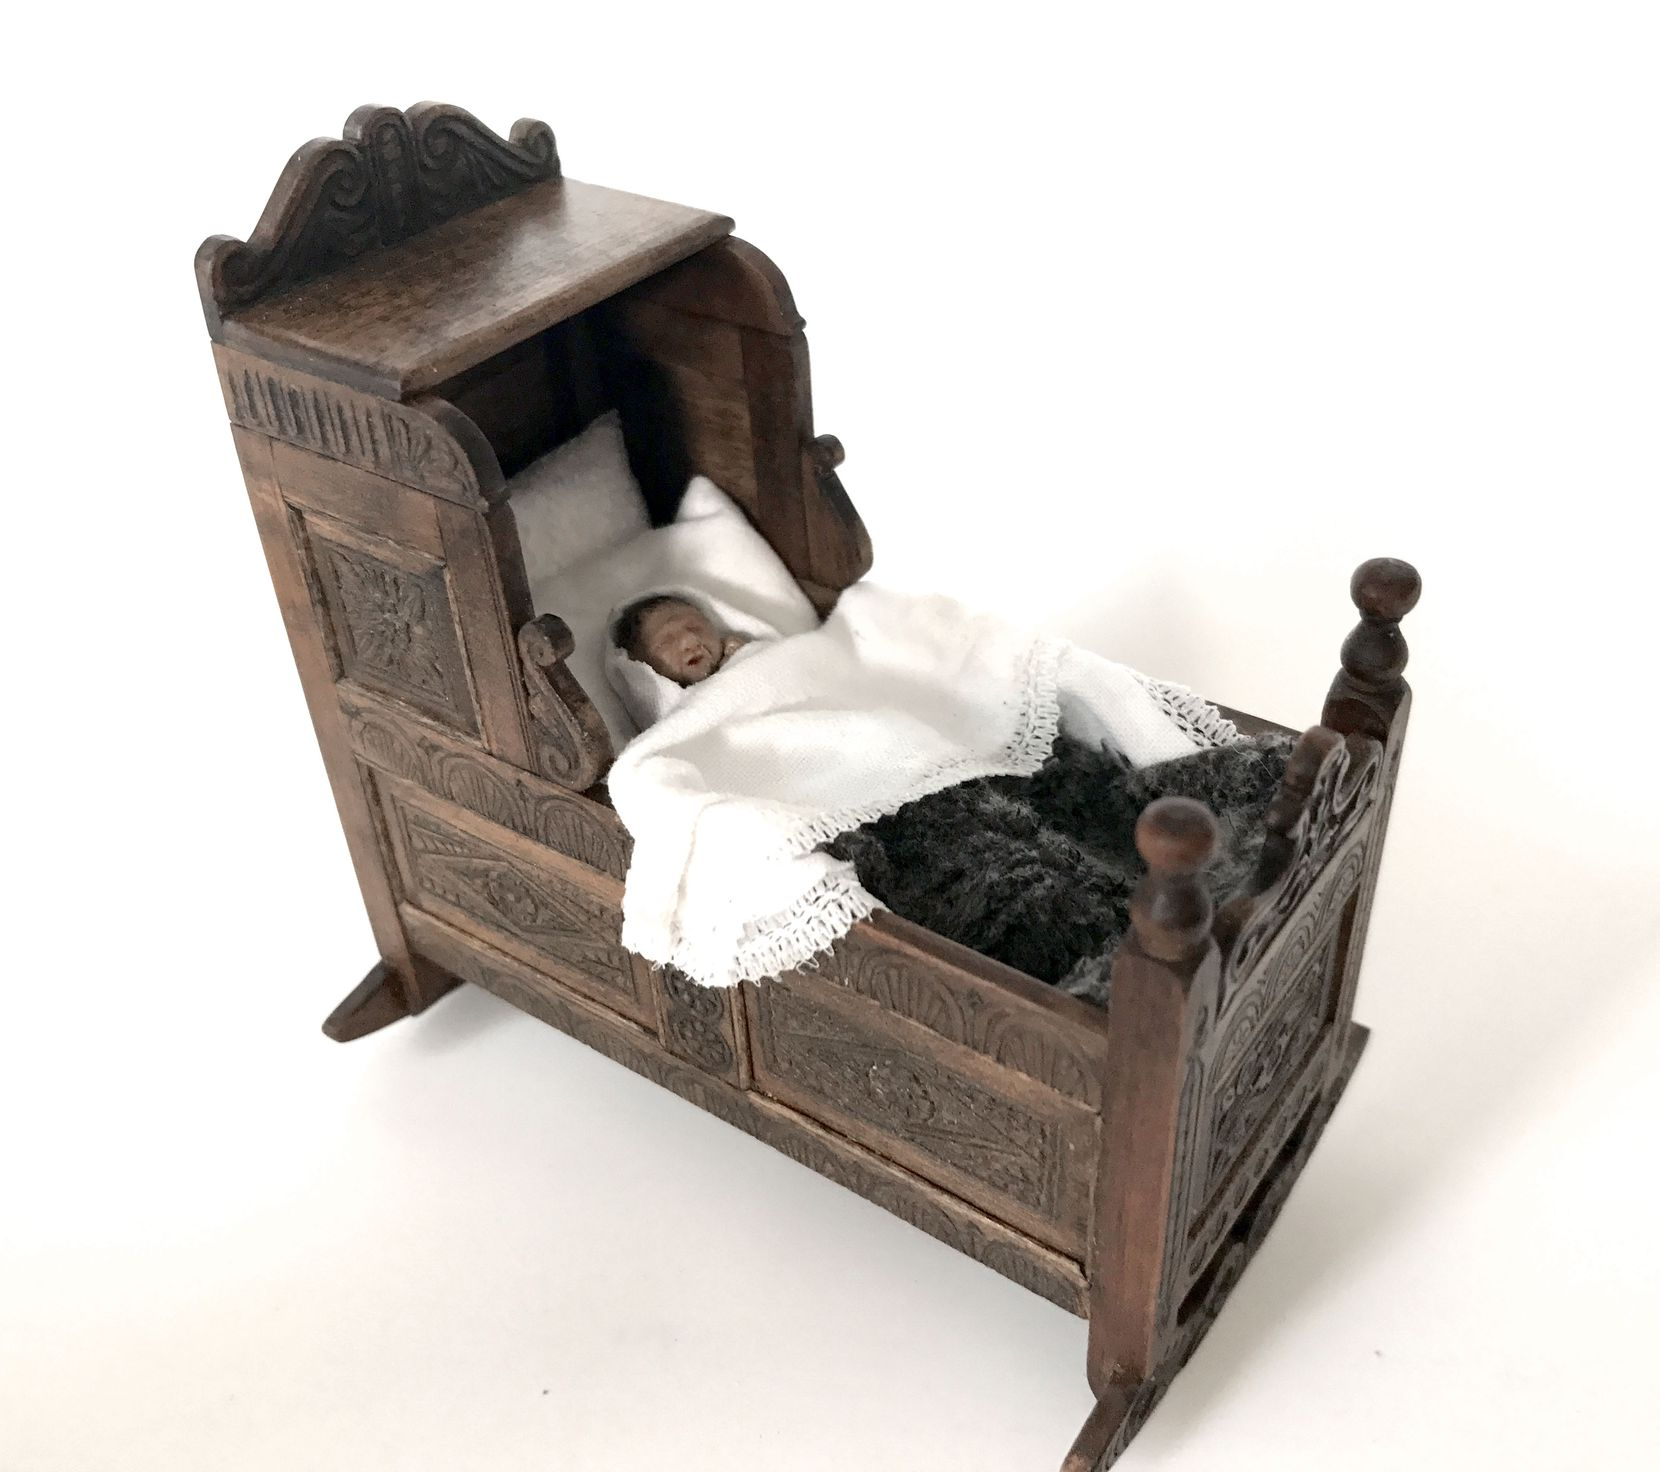 A cradle made by Ann High, with linens and baby made by Kevin Mulvany and Susie Rogers, who consulted on the creation of miniatures for a three-part miniseries that aired on PBS Masterpiece, based on Jessie Burton's 2014 best-selling book, The Miniaturist.